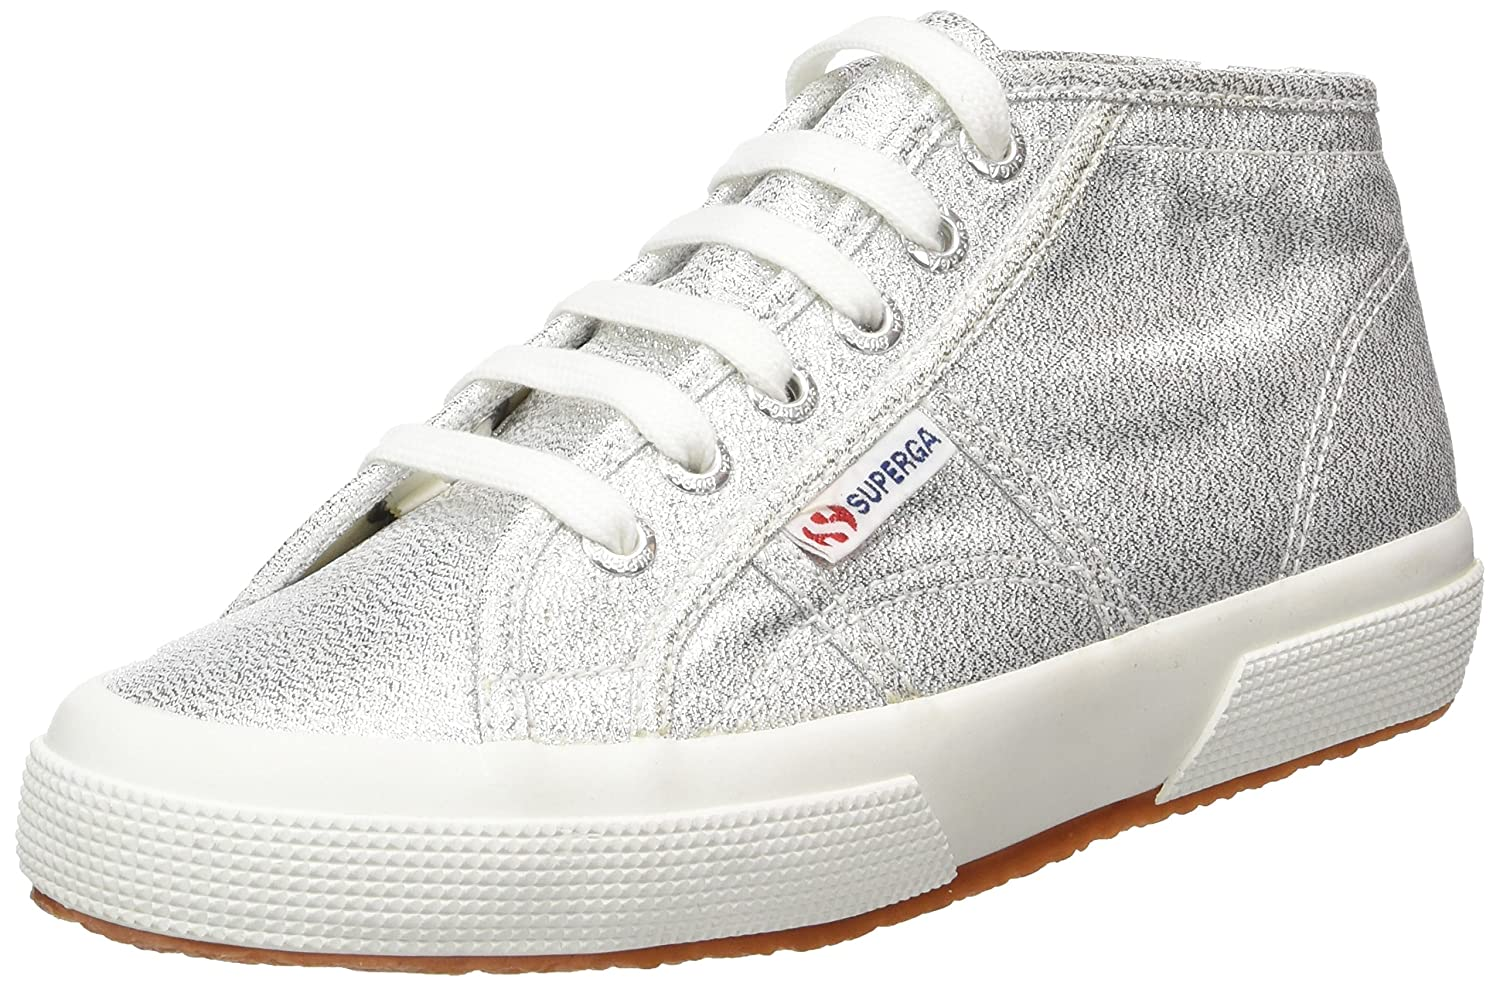 Superga femme, basses 2754 Lame, Sneakers basses femme, Argent - argent, Argent 40 - 6376248 - fast-weightloss-diet.space